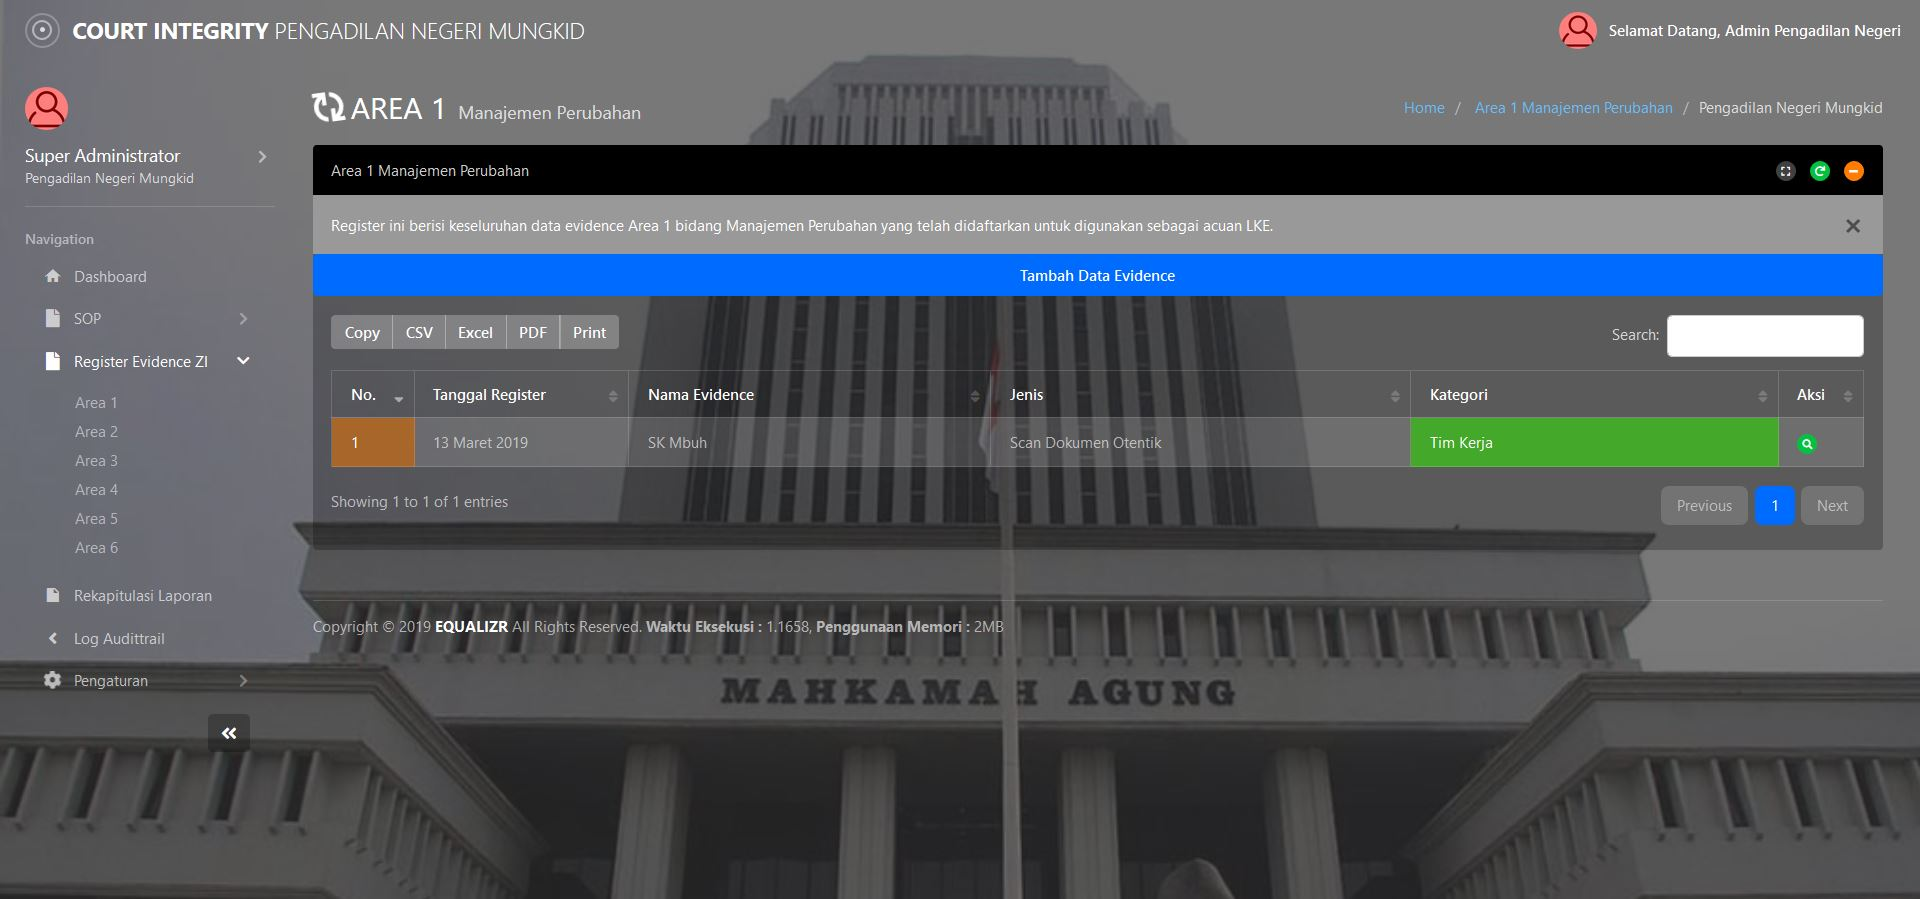 Sosialisasi Update Konten Website